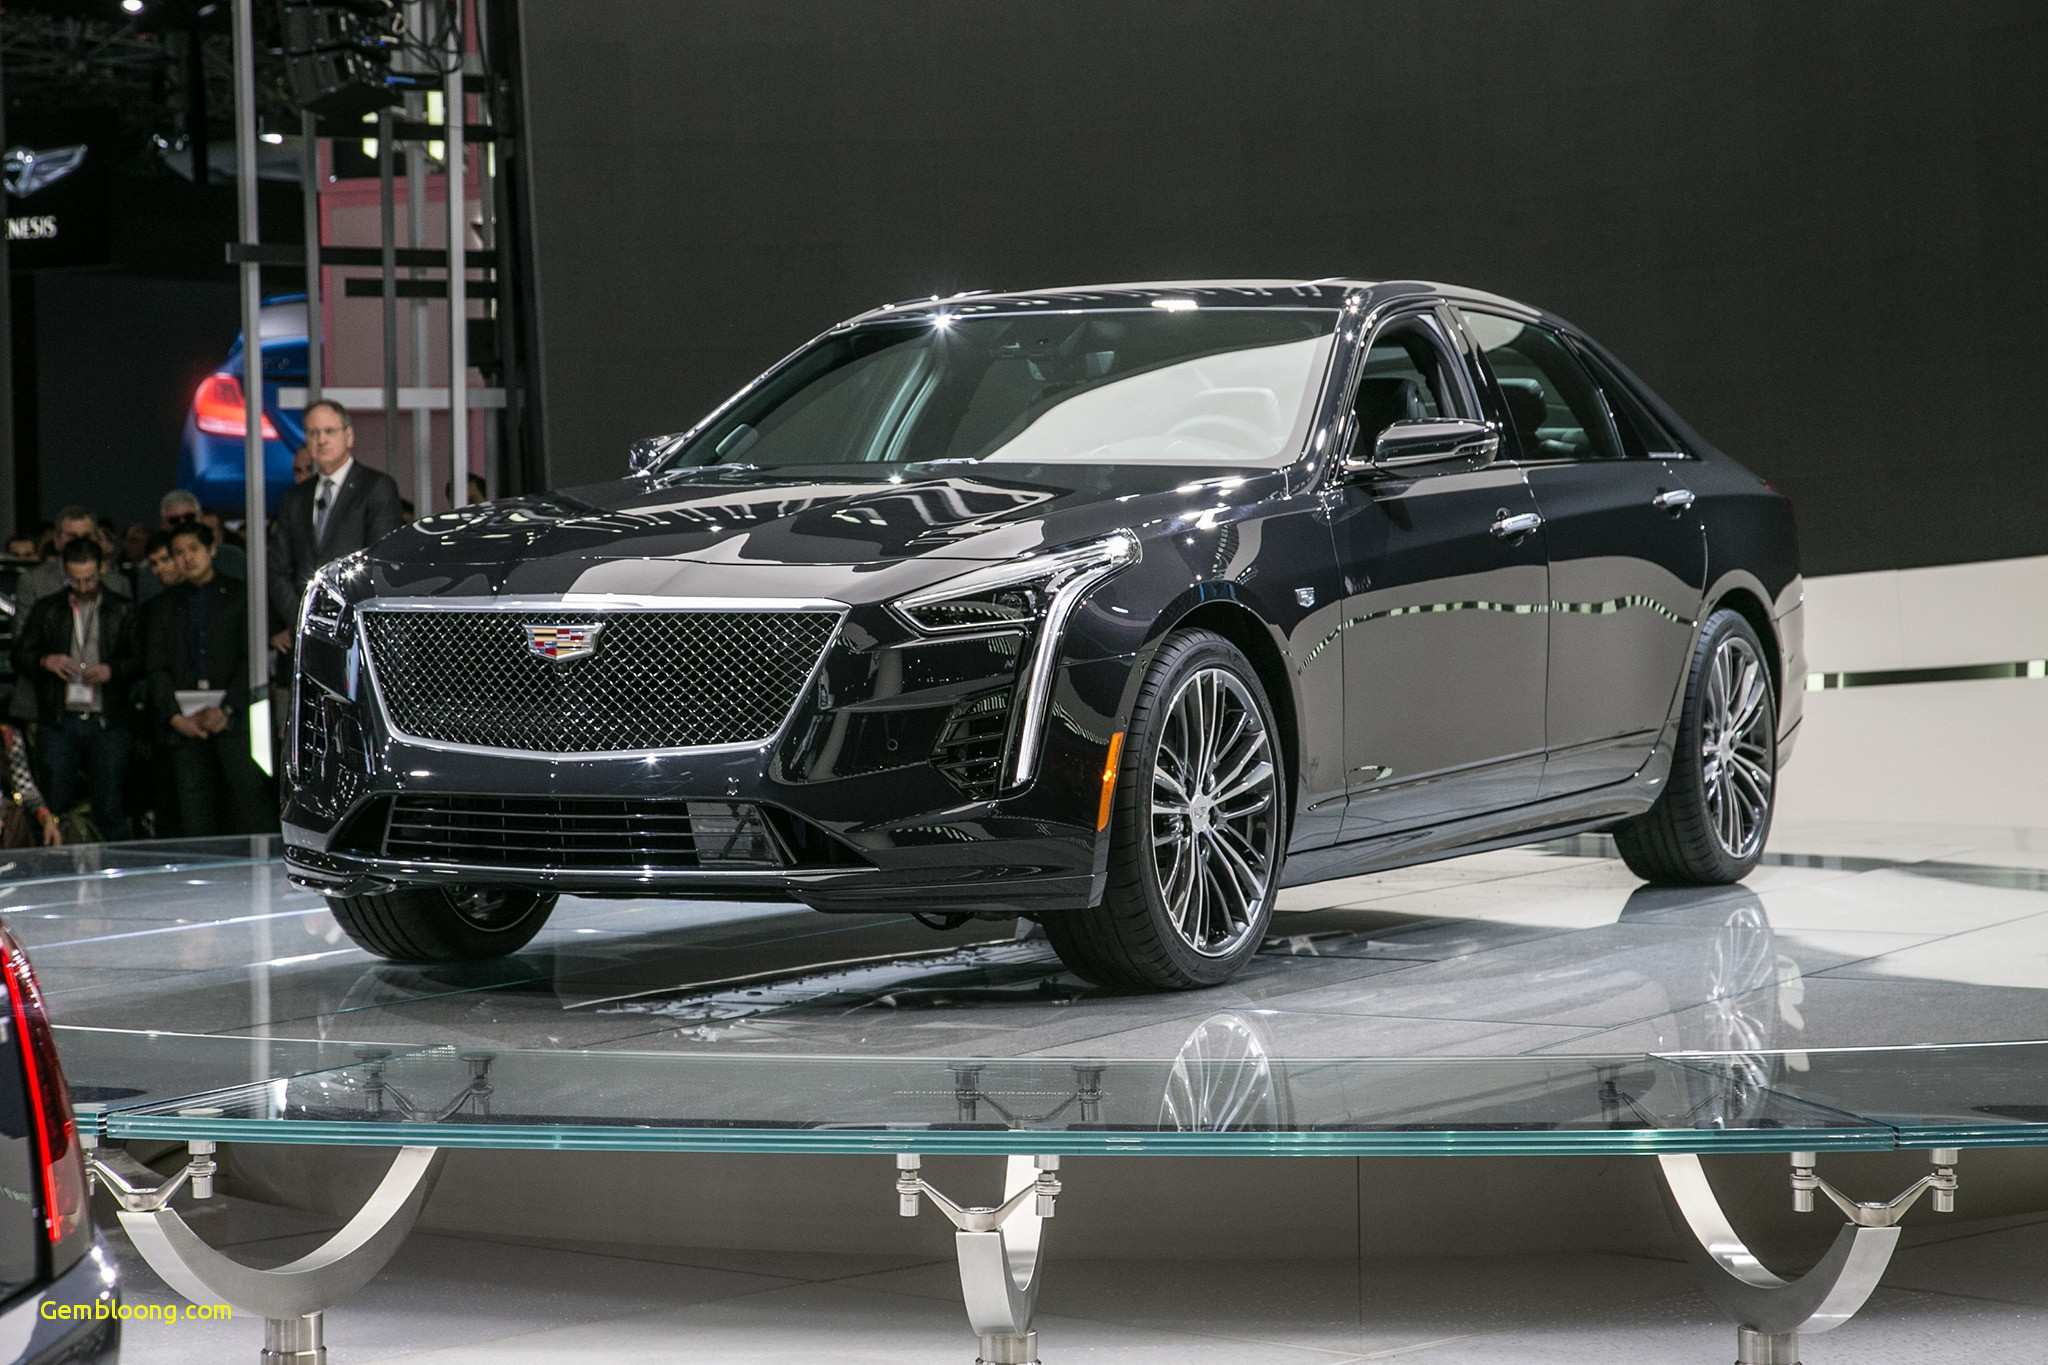 64 A 2020 Cadillac LTS Spy Shoot